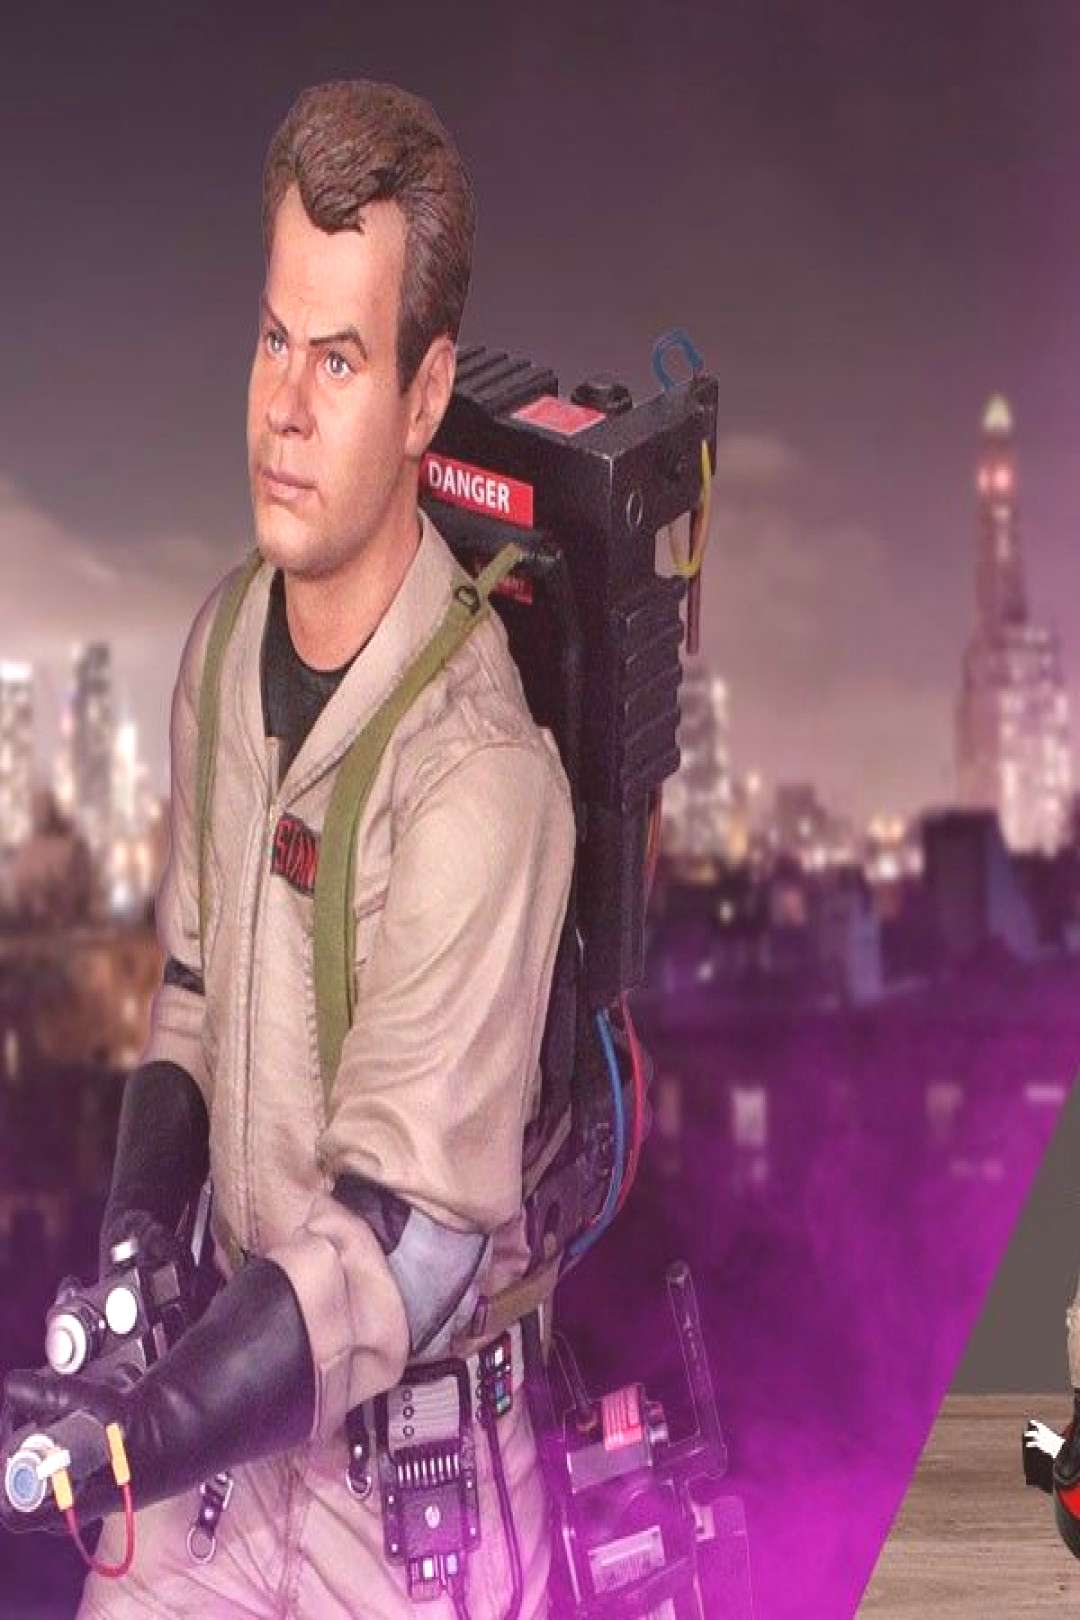 Ray Stantz Ghostbusters Statue - Licensed, Original, Limited Edition Sideshow and Hollywood Collect